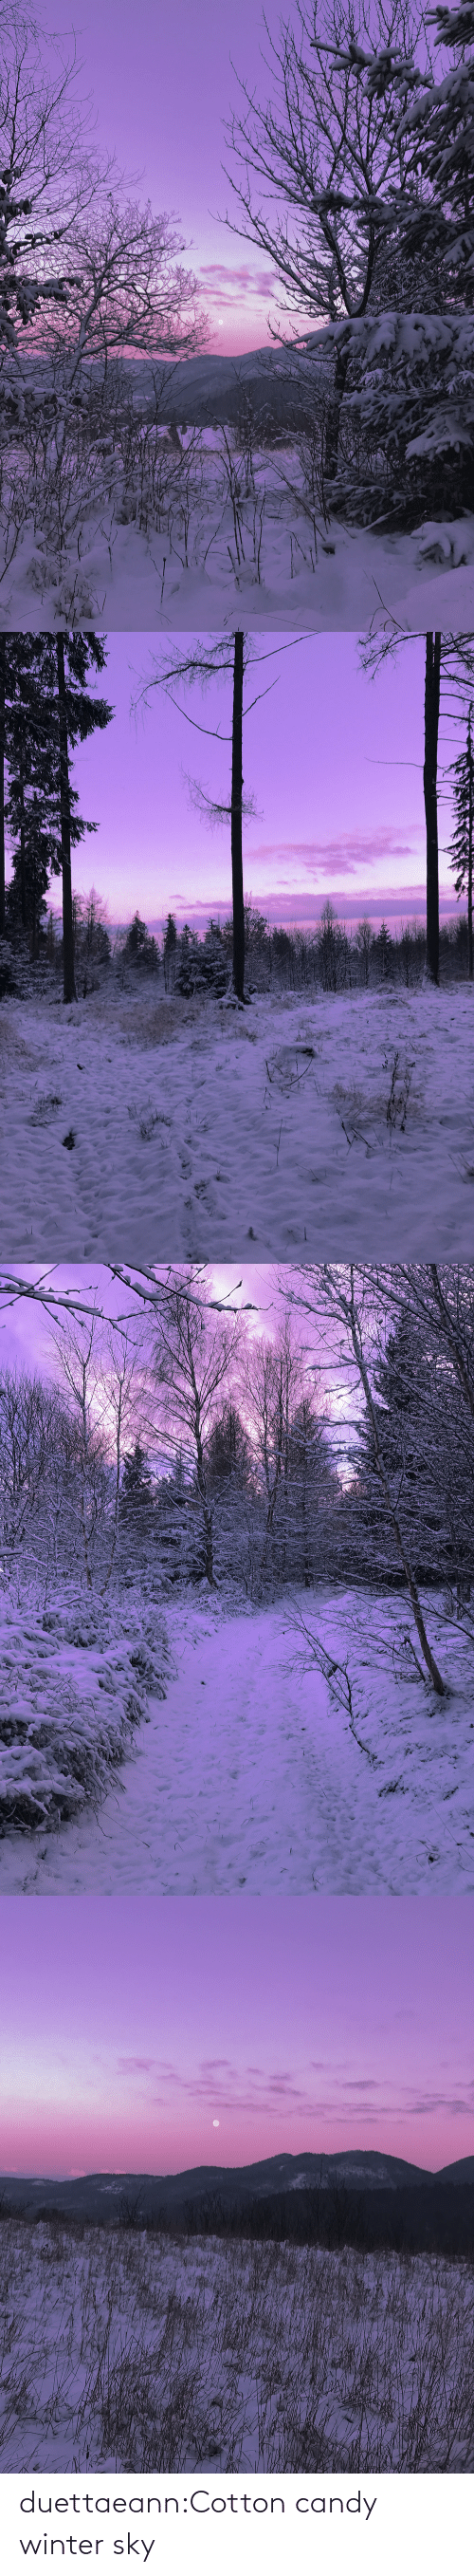 Winter: duettaeann:Cotton candy winter sky